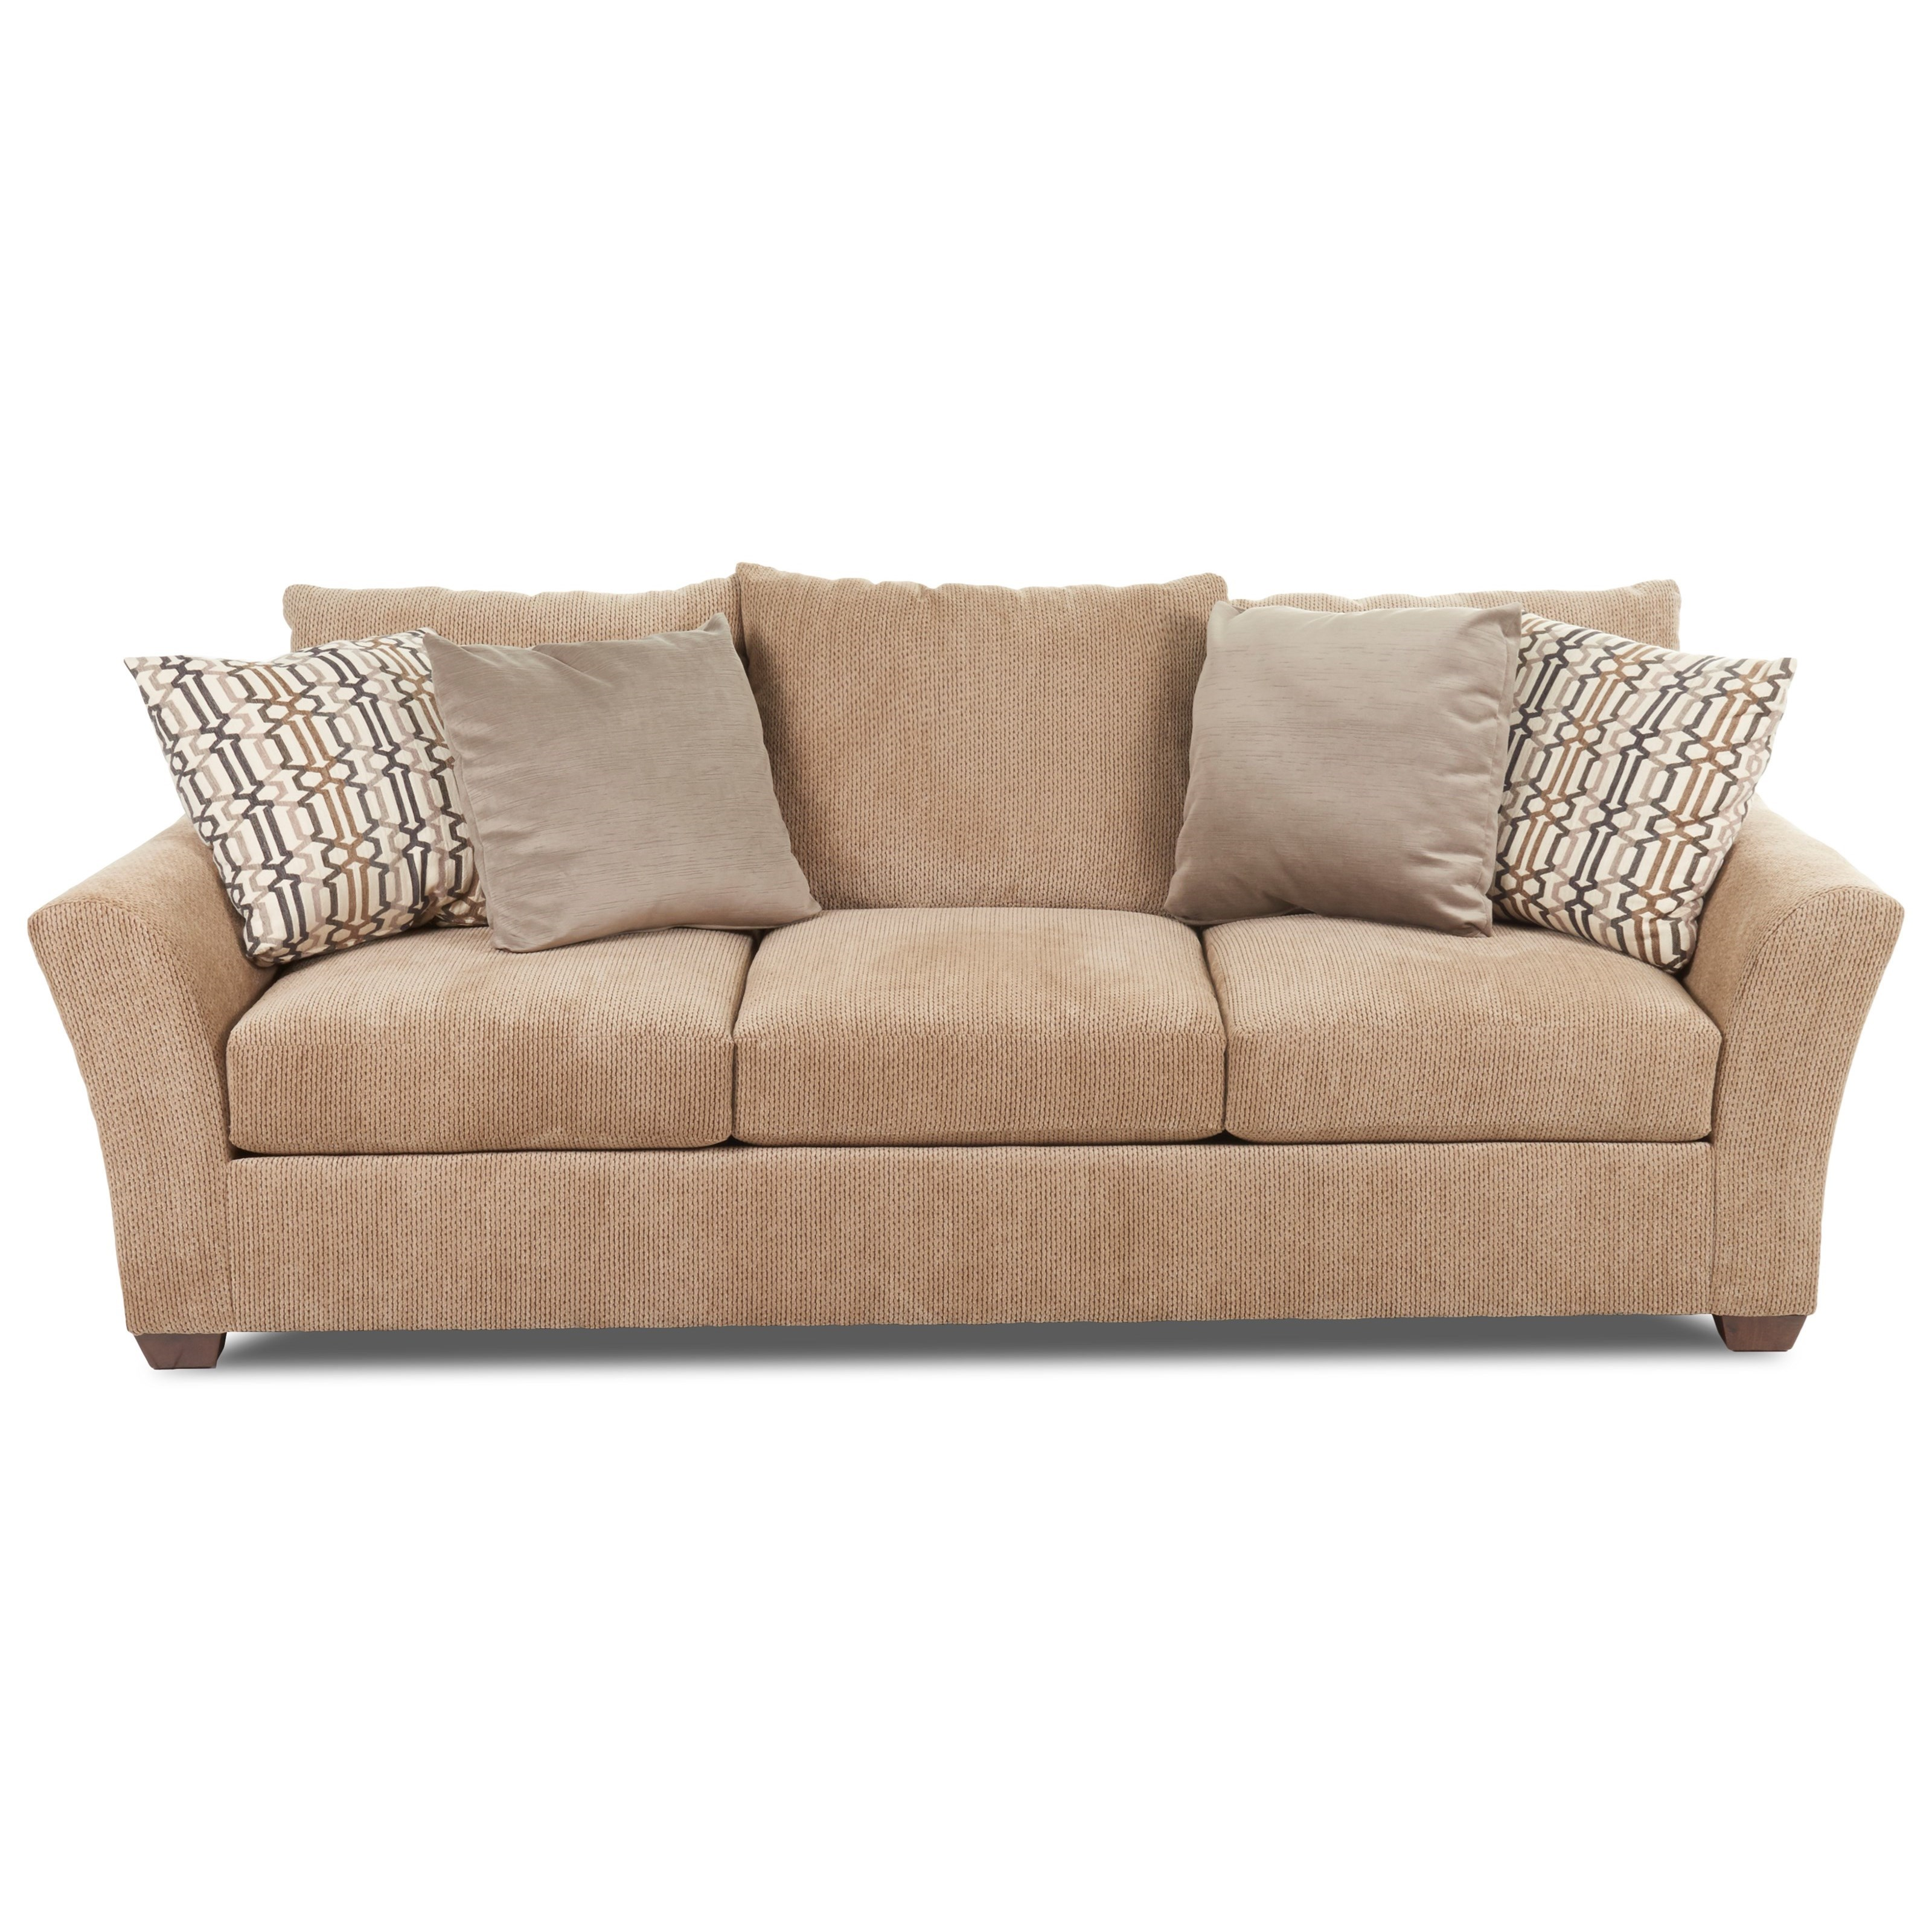 Klaussner Pinecrest Pinecrest Sofa with Flared Arms Wayside